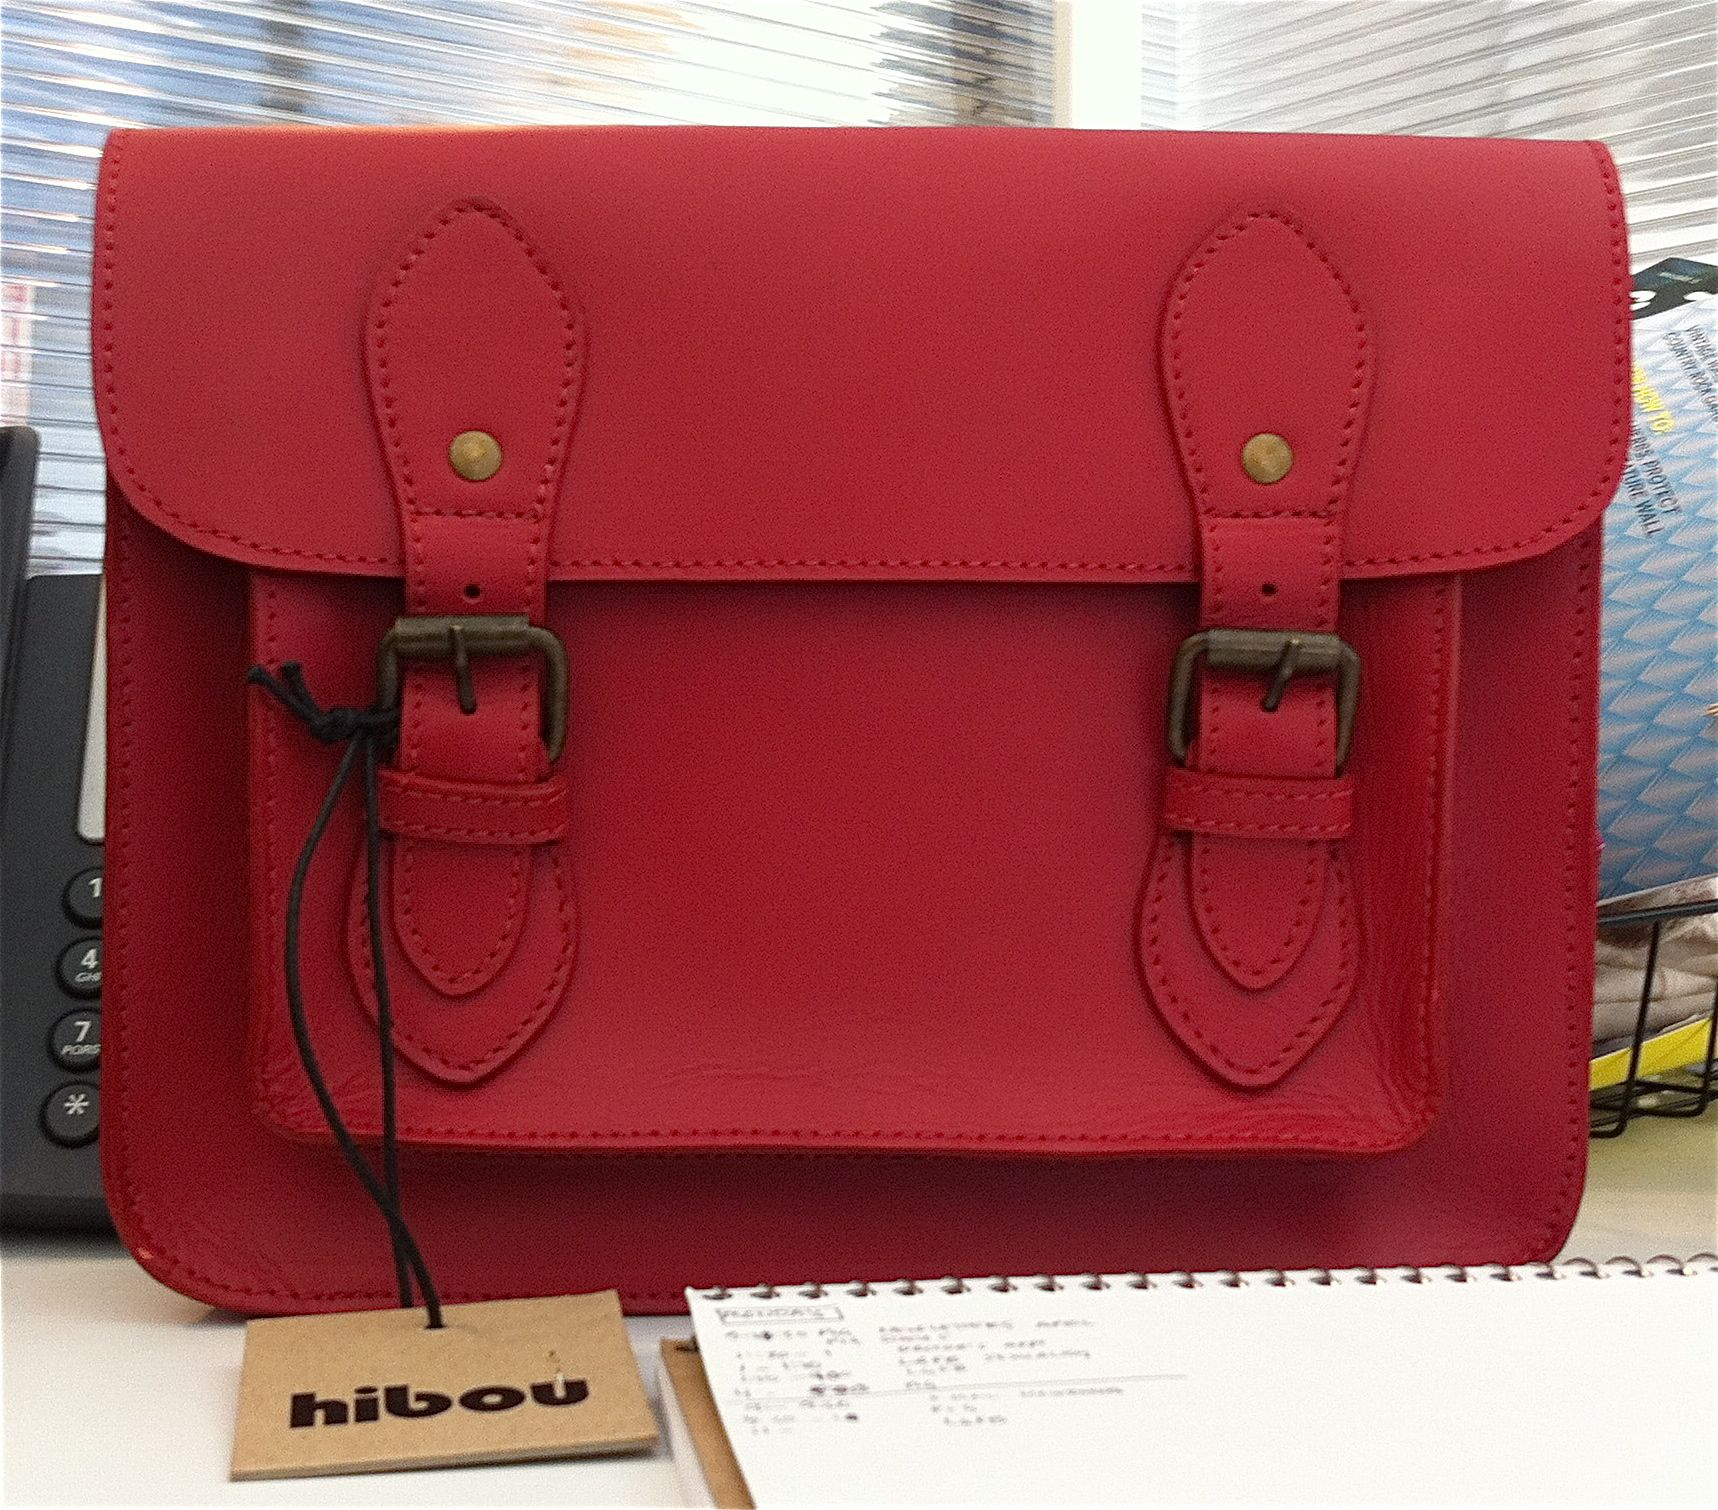 Bag Week: Red Leather Hibou Satchel | Satchels, Red leather and Bag